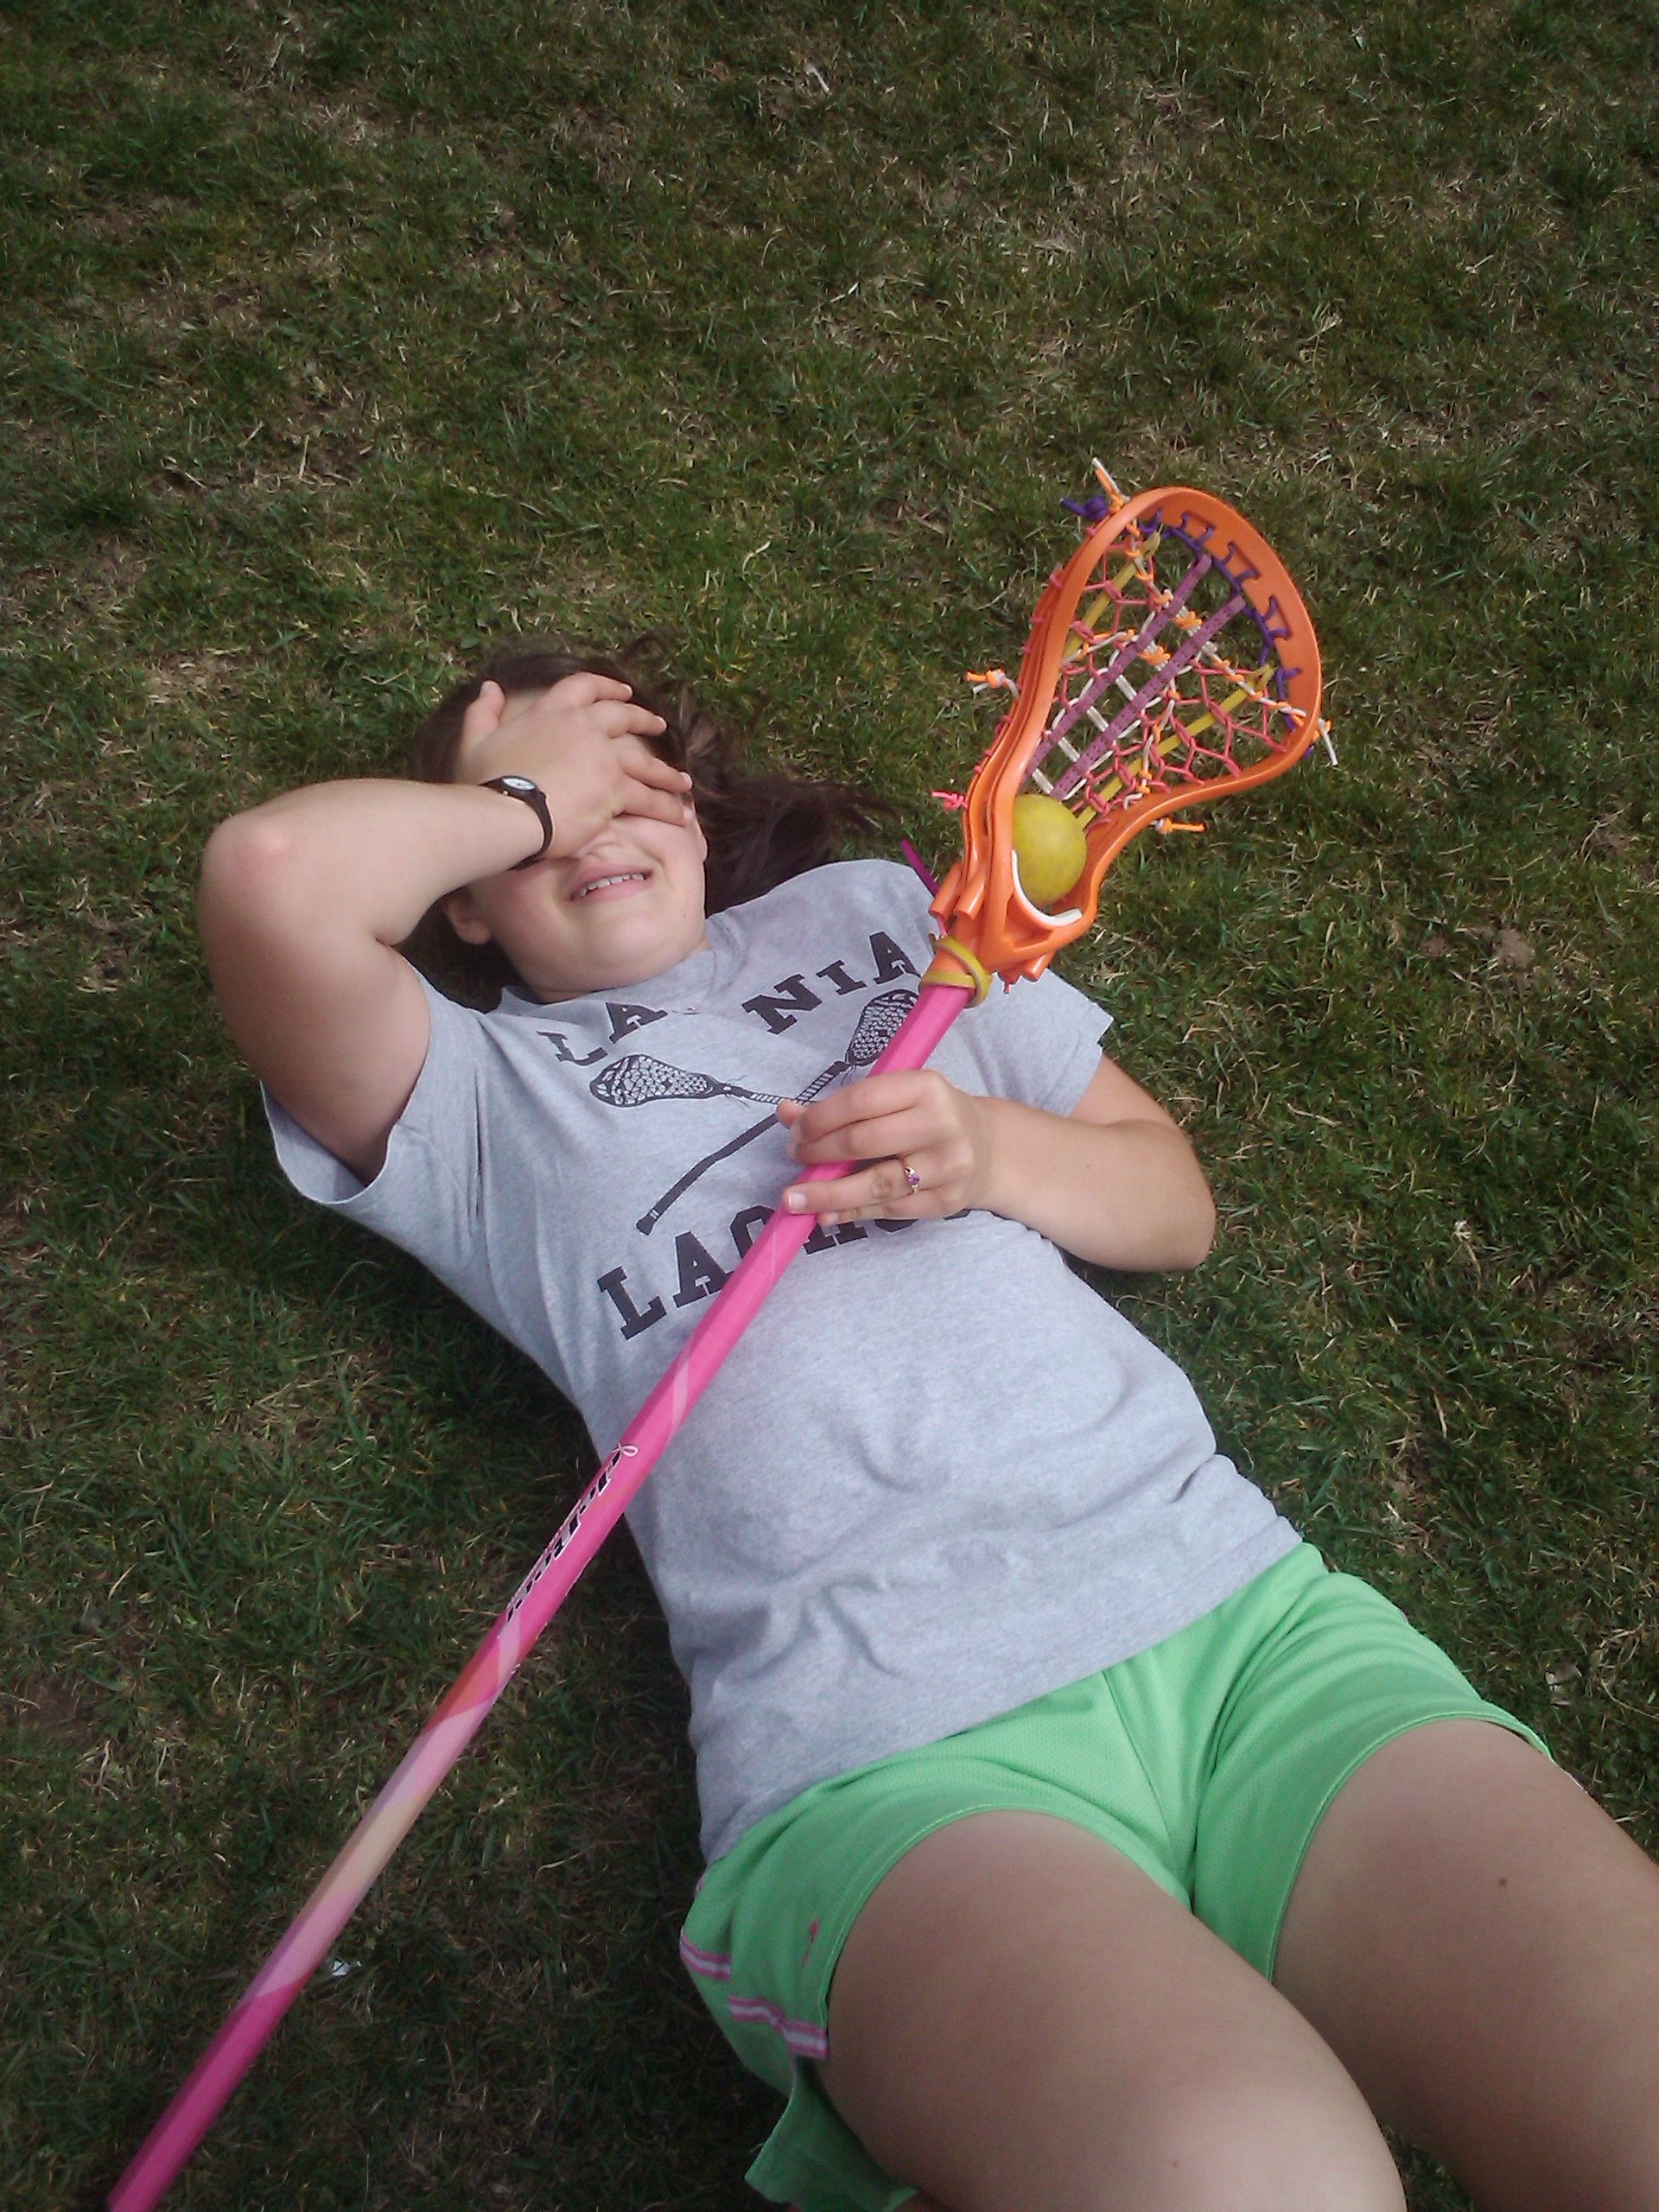 Because some days, you just have to facepalm. But hey, at least it's a lacrosse day!